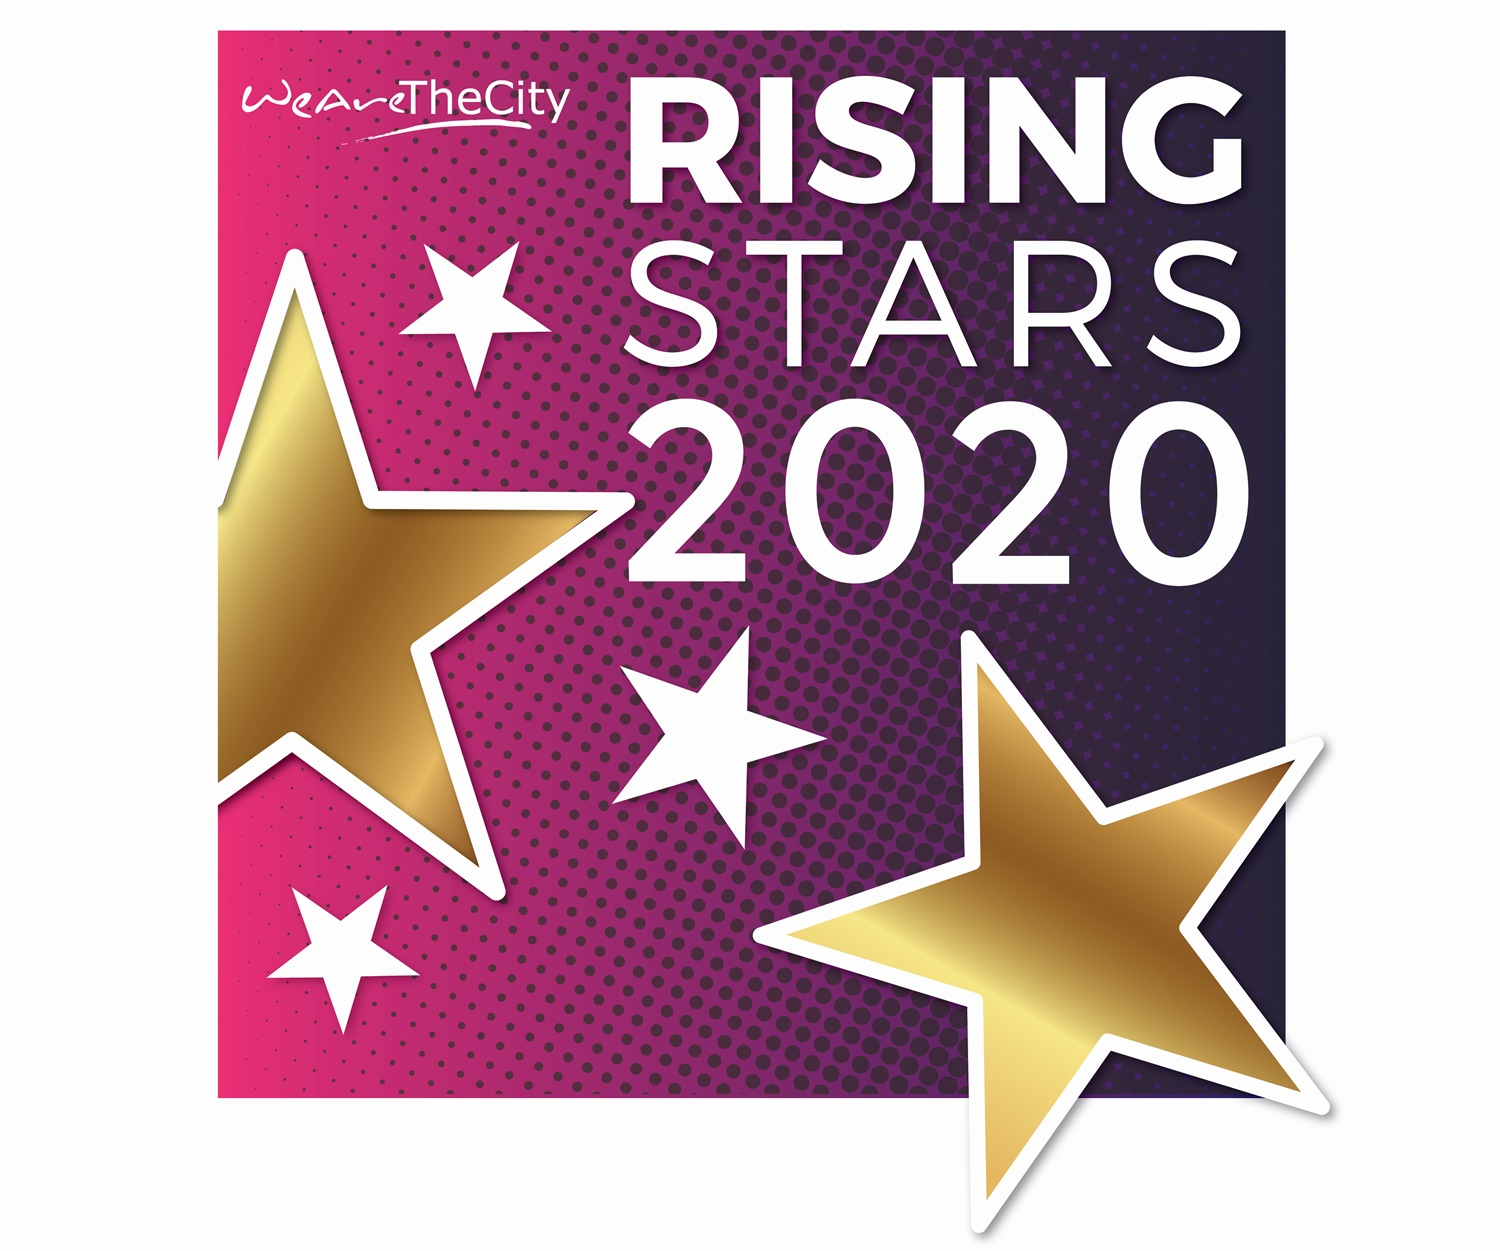 RTM proud supporters of WeAreTheCity Rising Stars Awards 2020